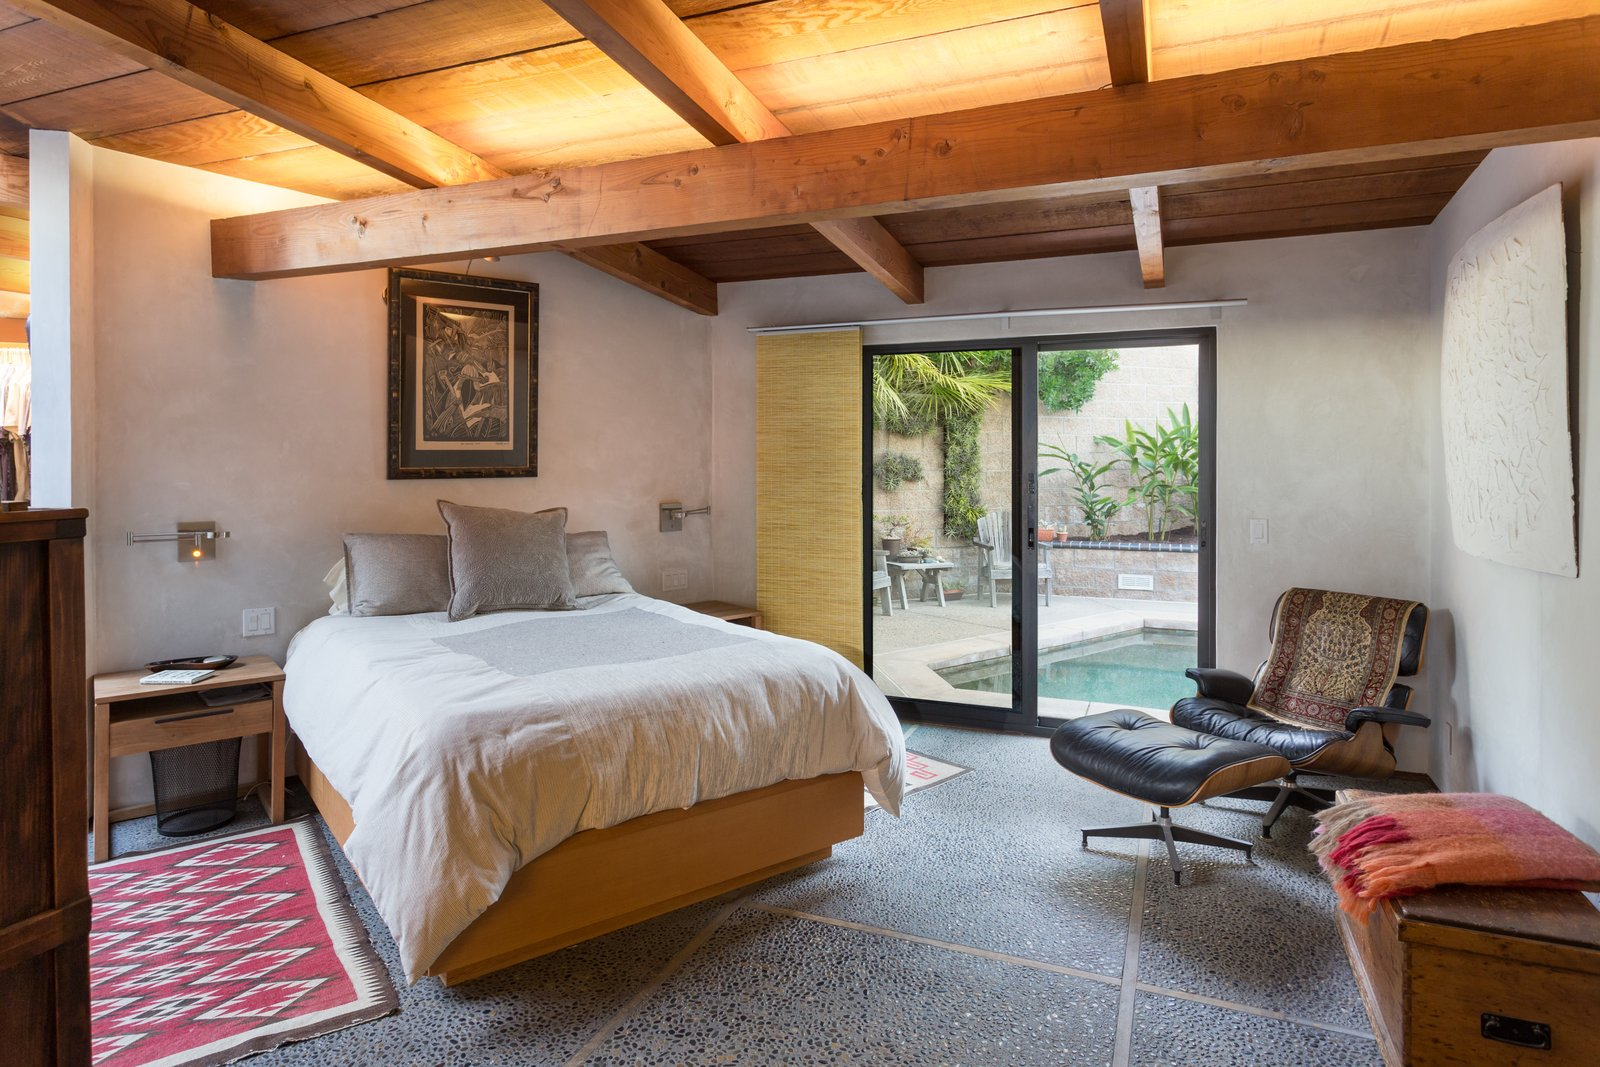 Bedroom, Bed, Chair, and Storage  Photo 5 of 13 in A 1974 Masterpiece Is Put on the Market by a Family Friend of the Late Julius Shulman